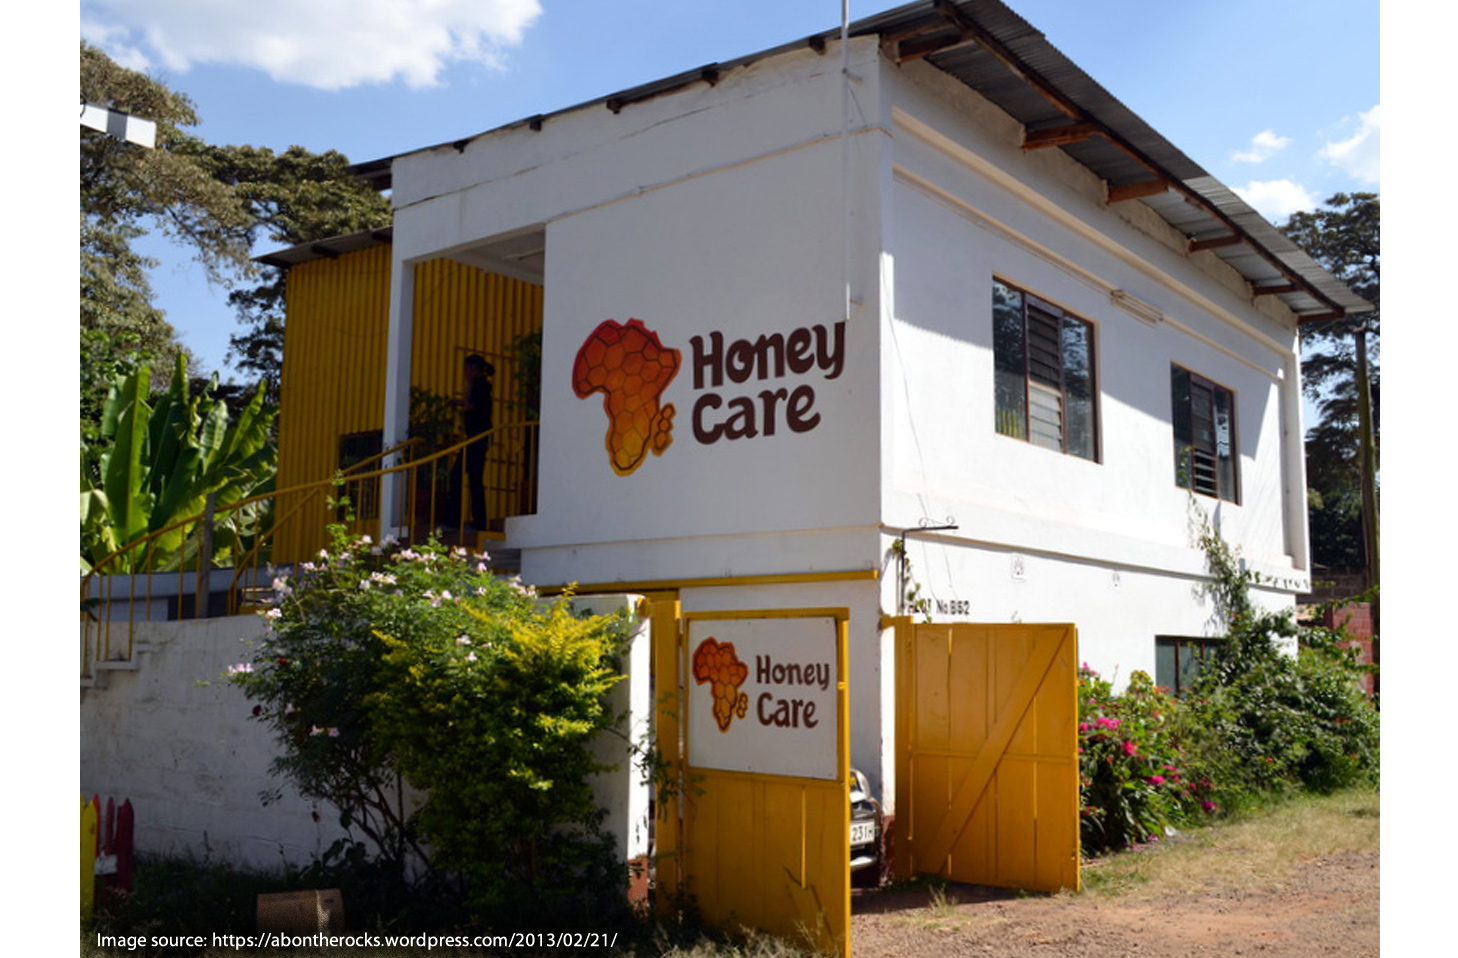 Building in Africa with painted logo.